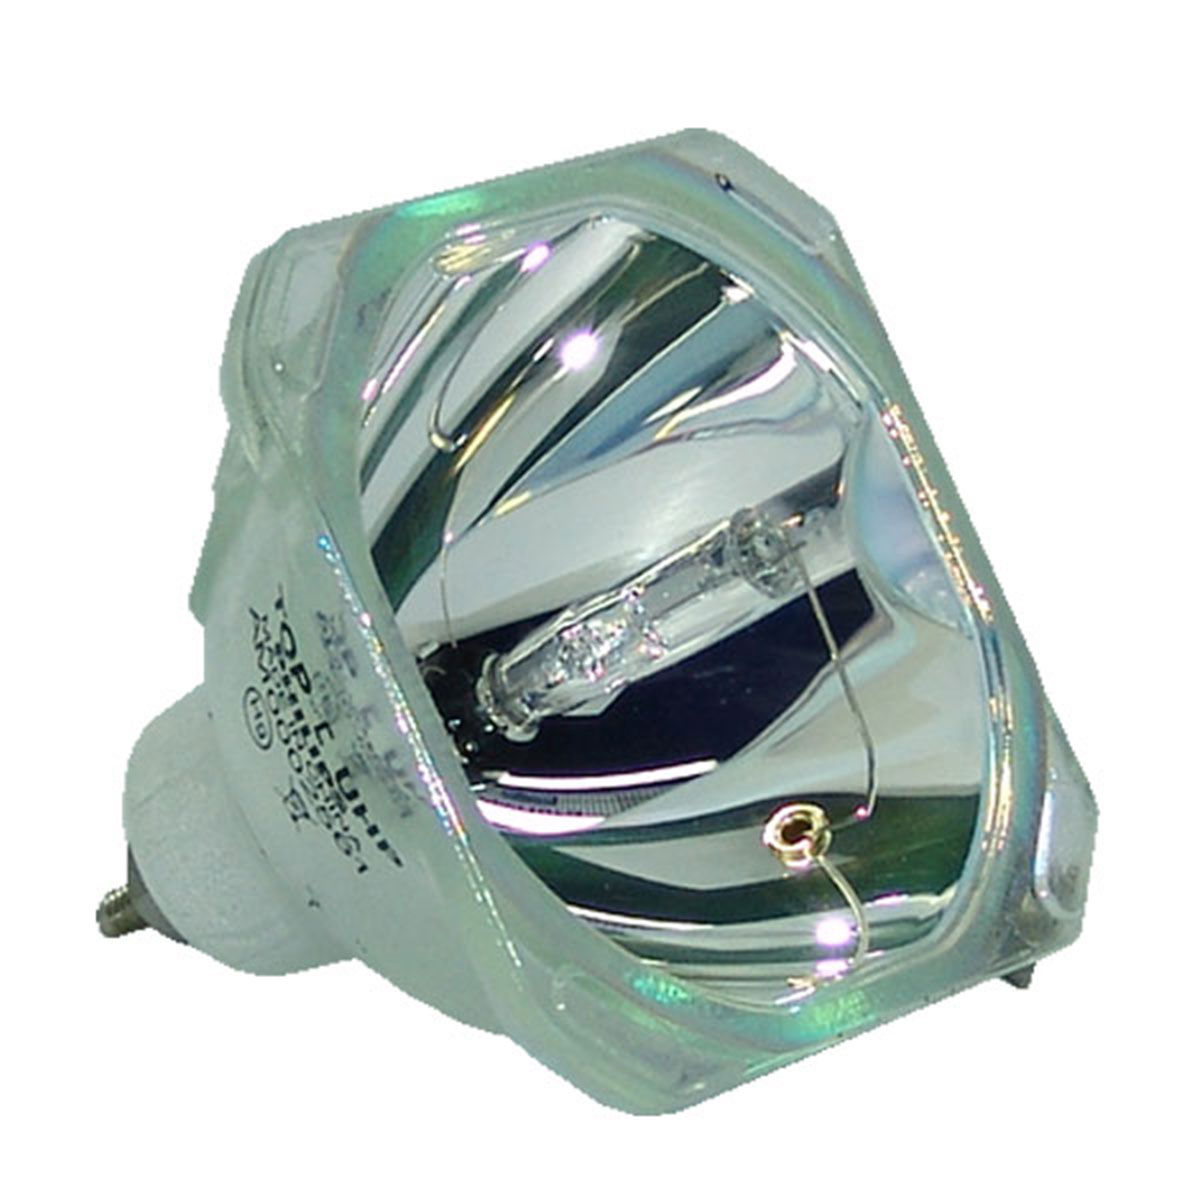 Original Philips TV Lamp Replacement for Sony KDF-50E2010 (Bulb Only) - image 2 of 5